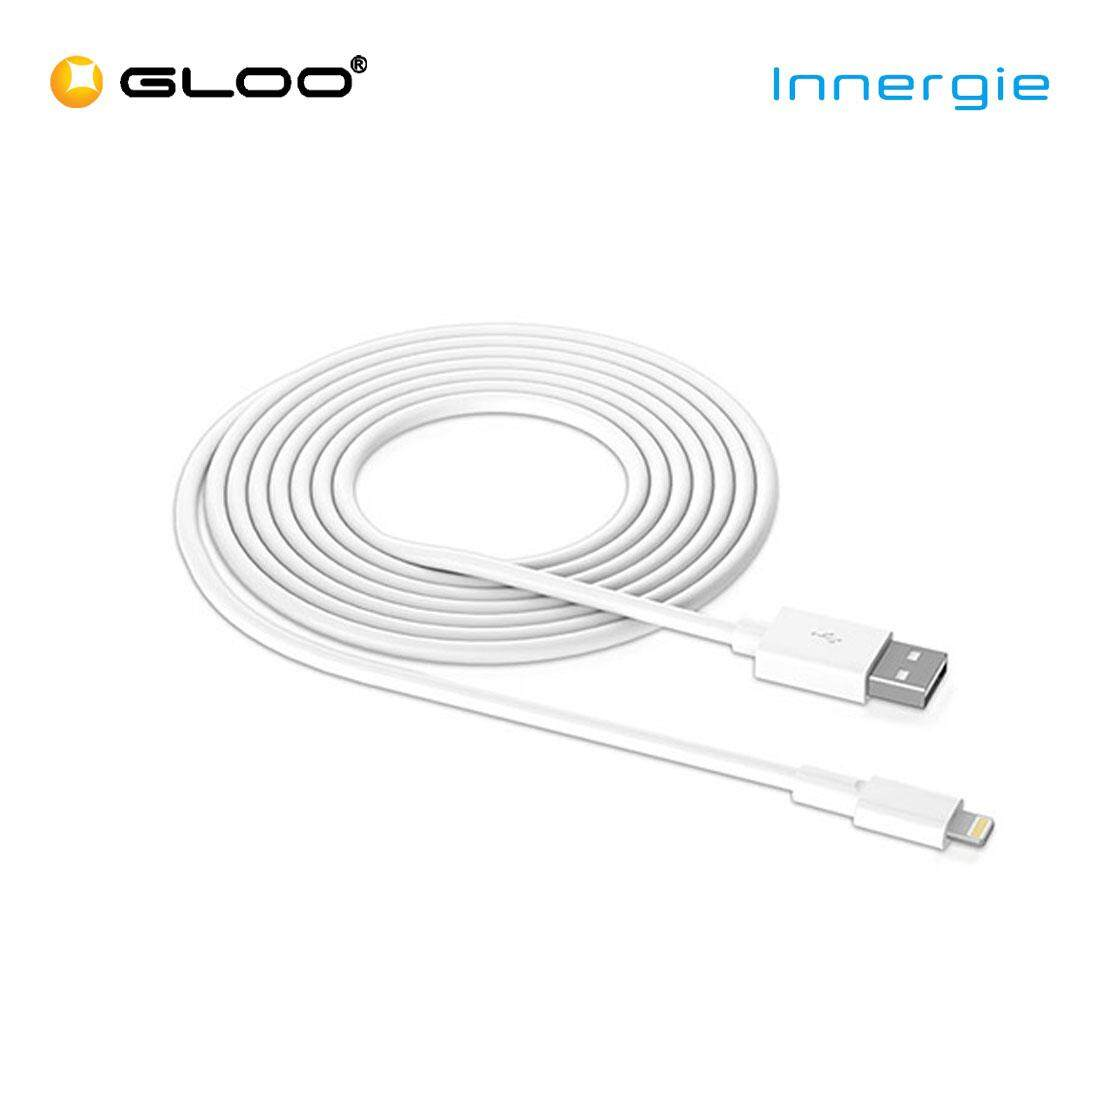 Innergie Magic Cable with Lightning 3M 8858751701422